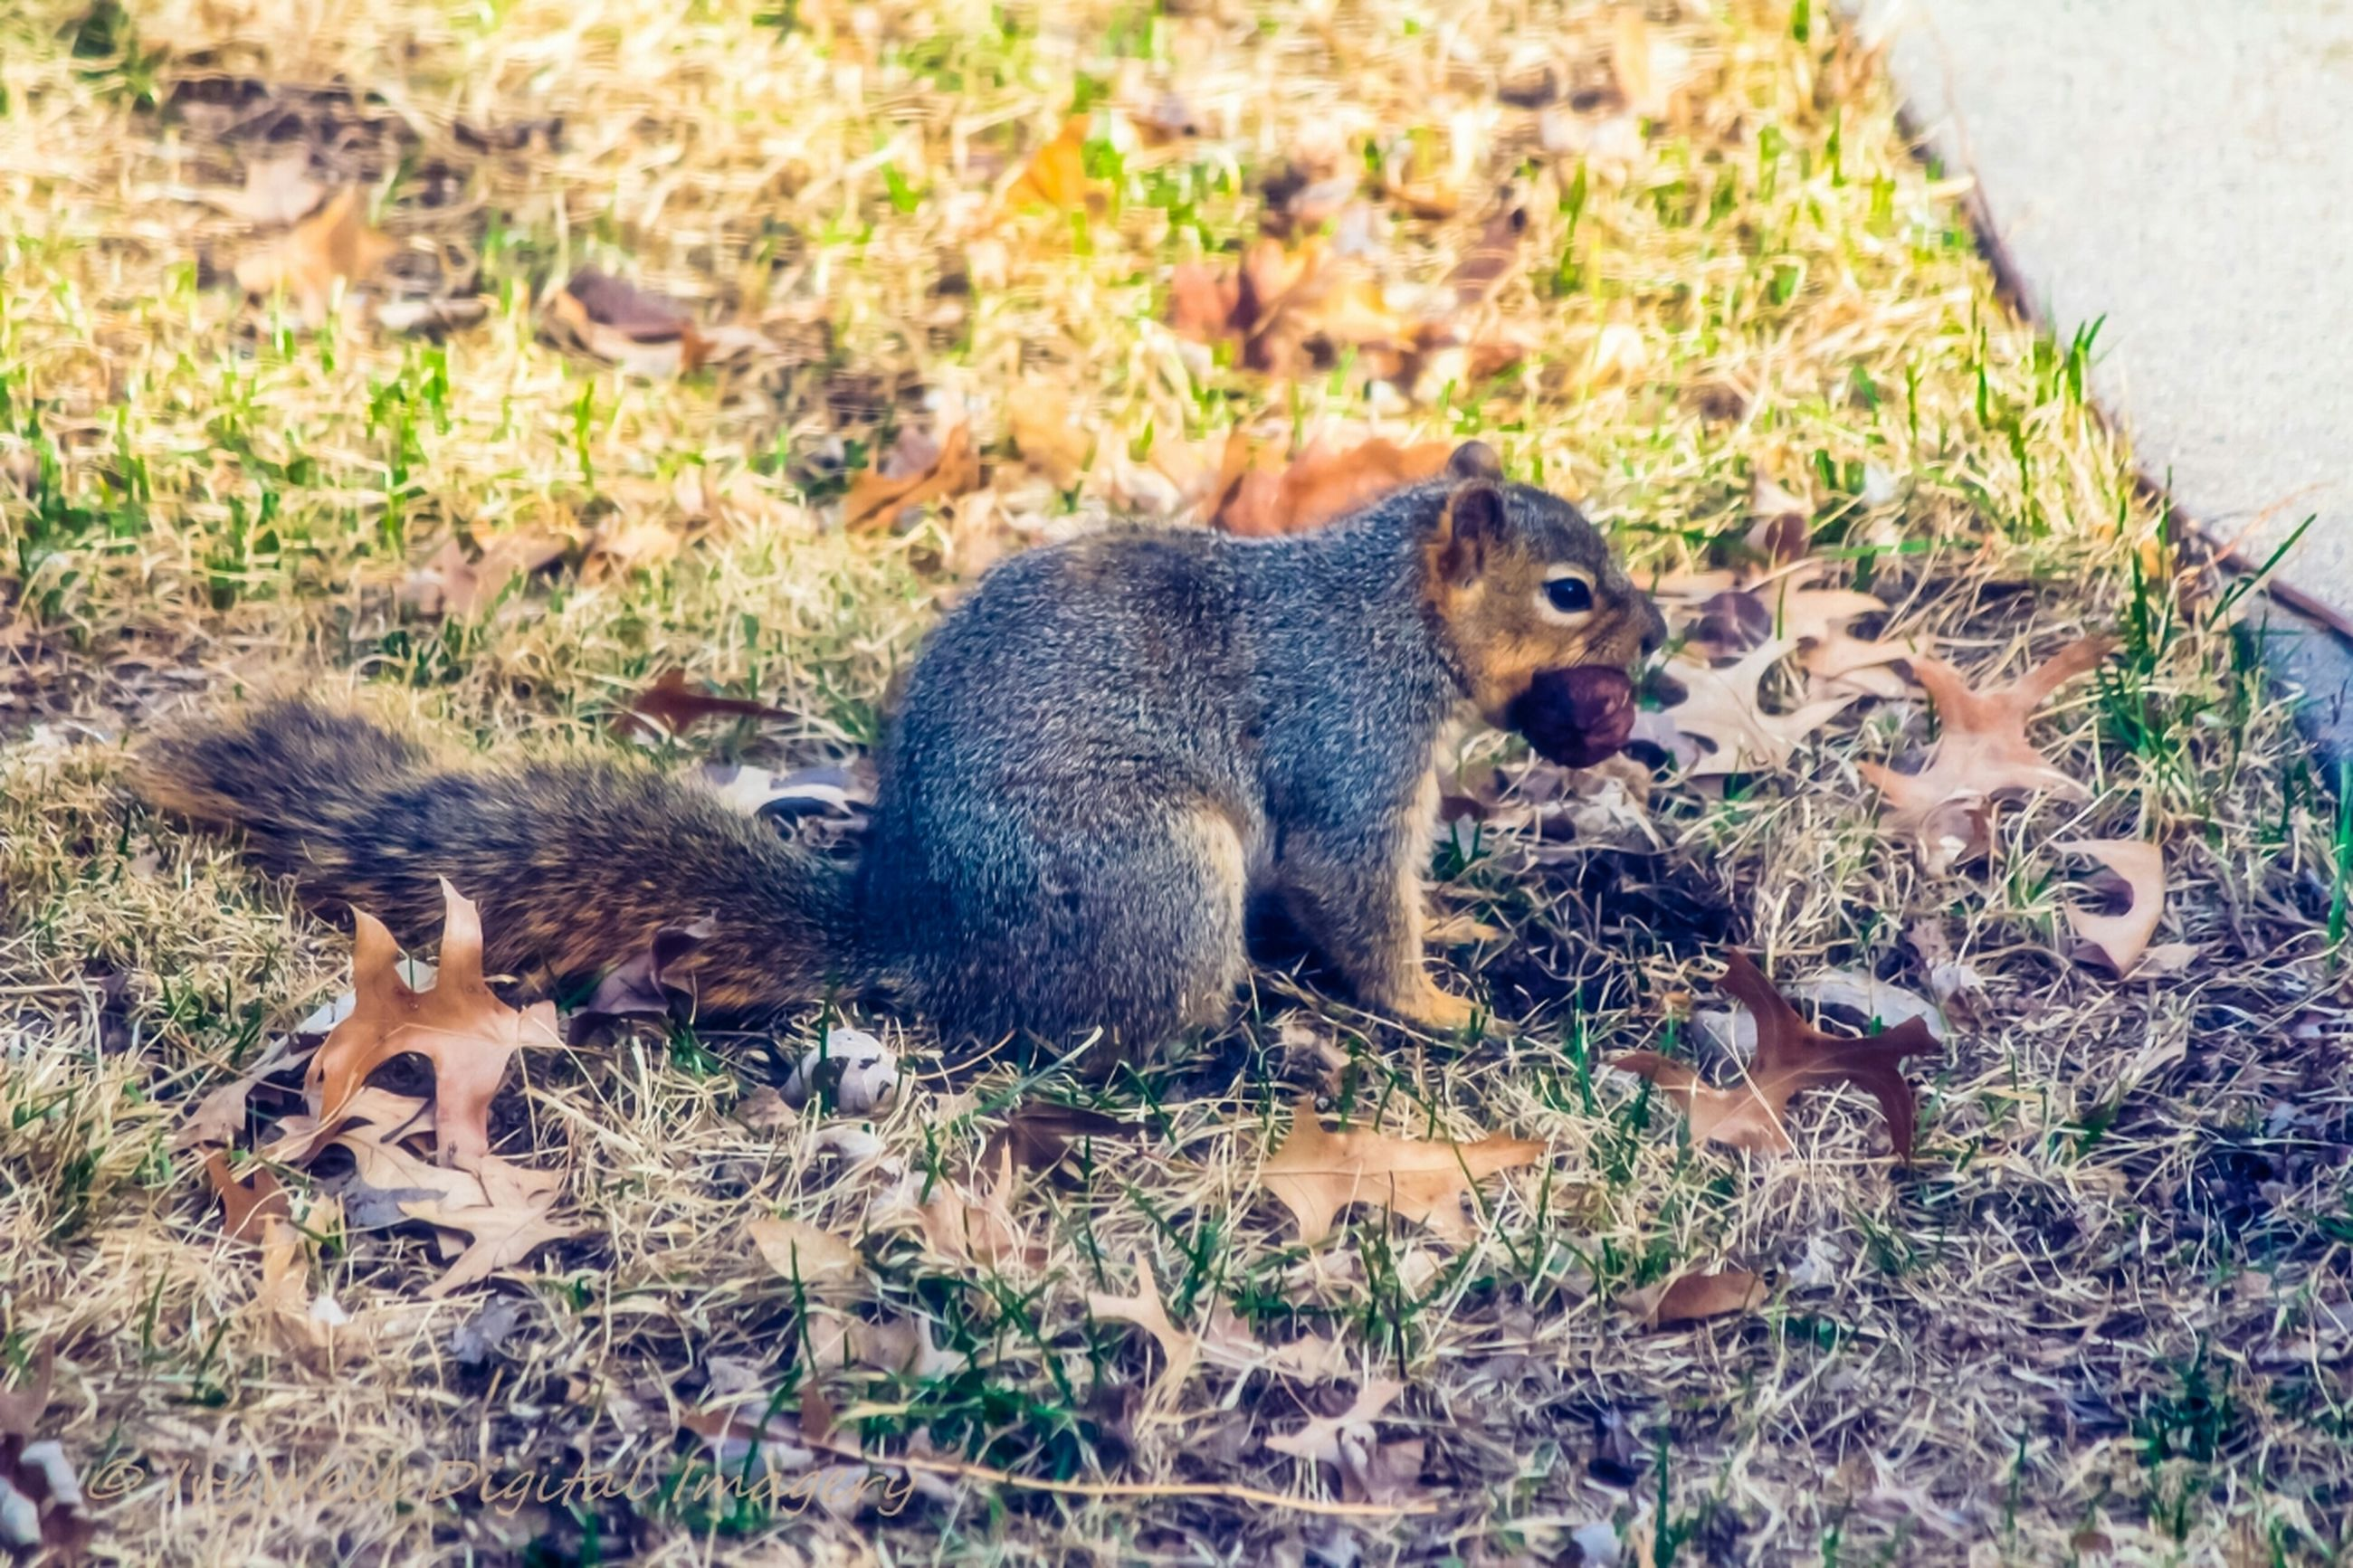 animal themes, animals in the wild, one animal, wildlife, squirrel, side view, eating, feeding, mammal, full length, zoology, alertness, tail, field, looking at camera, day, focus on foreground, outdoors, looking, no people